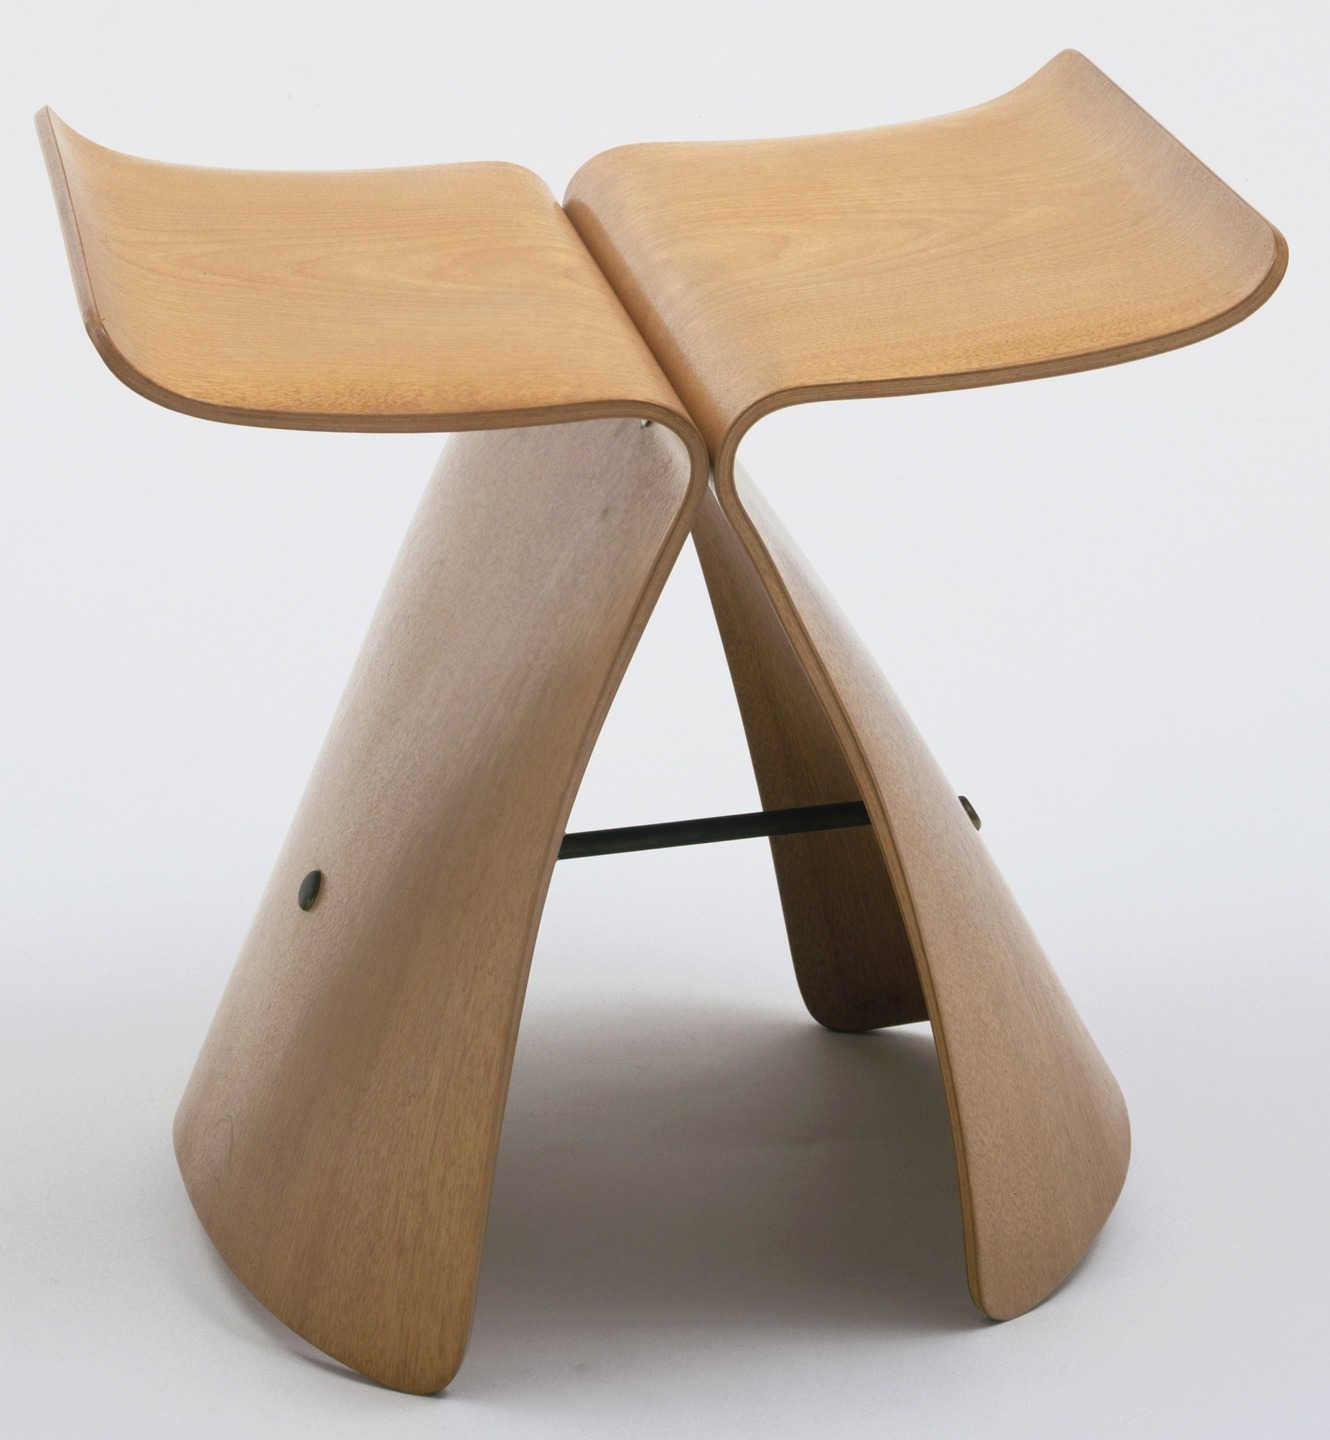 Butterfly chair sori yanagi - Sori Yanagi Butterfly Stool 1956